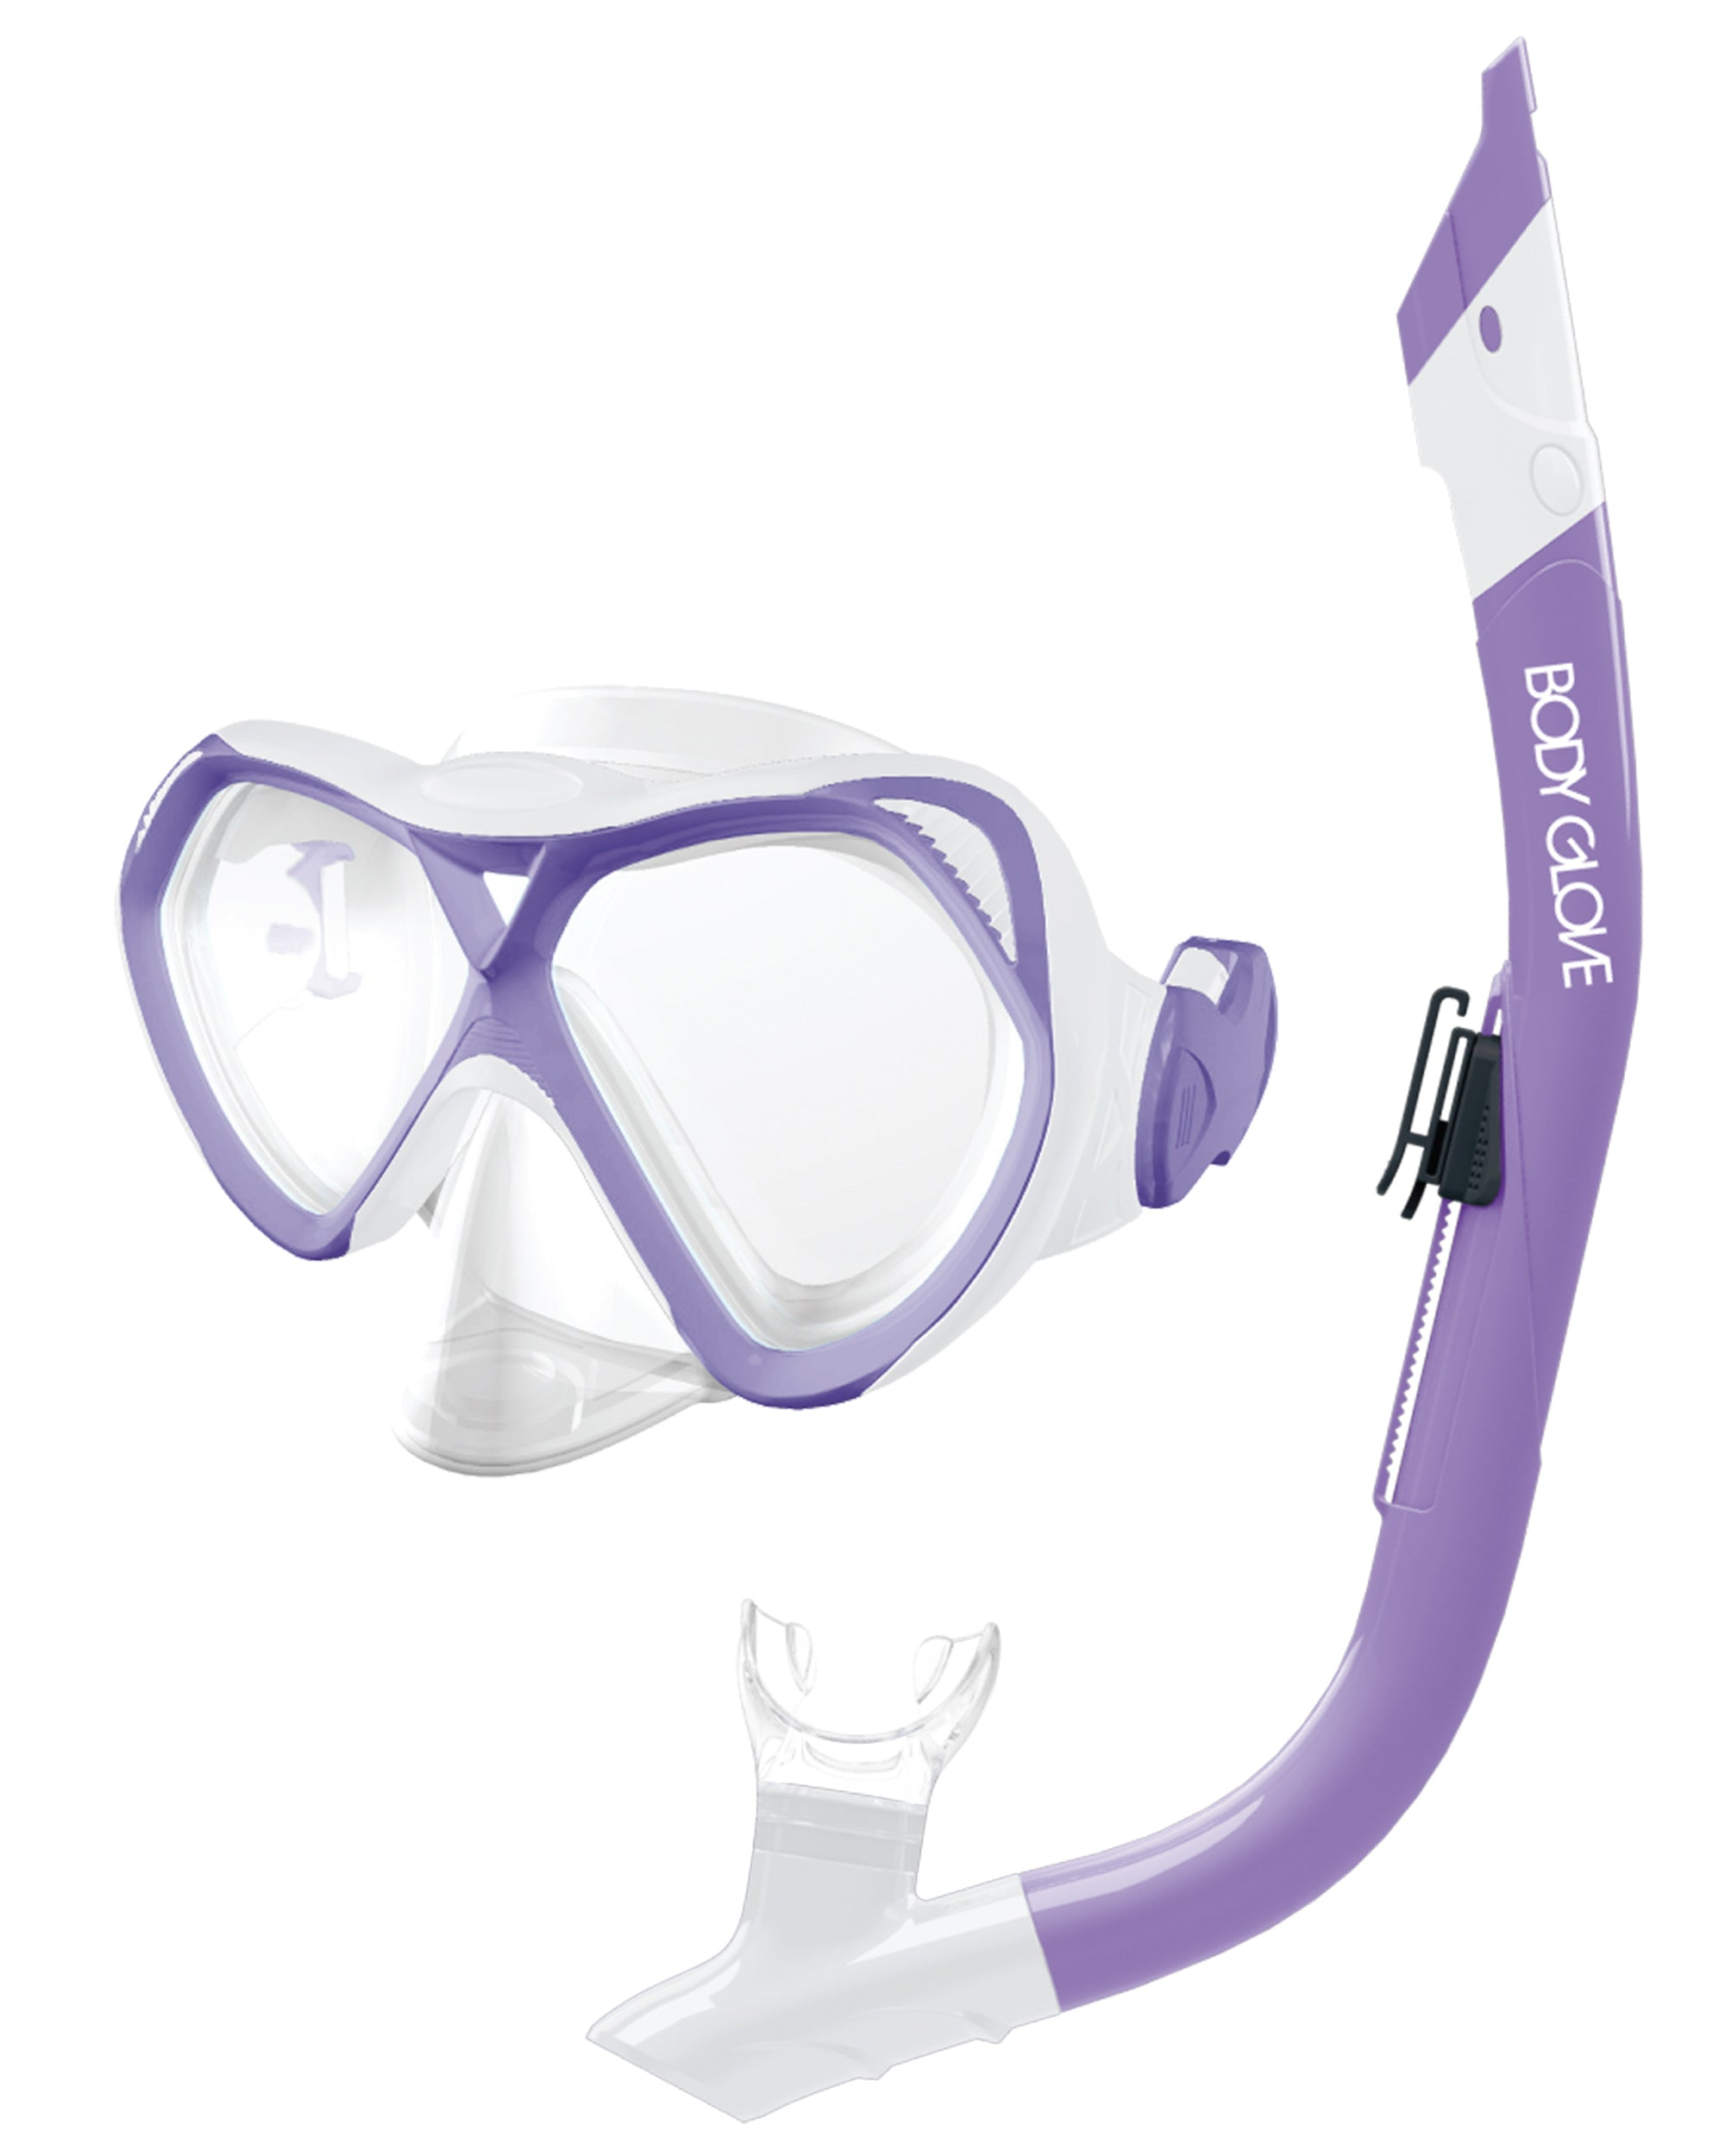 Cove Mask / Snorkel Combo - Purple/White